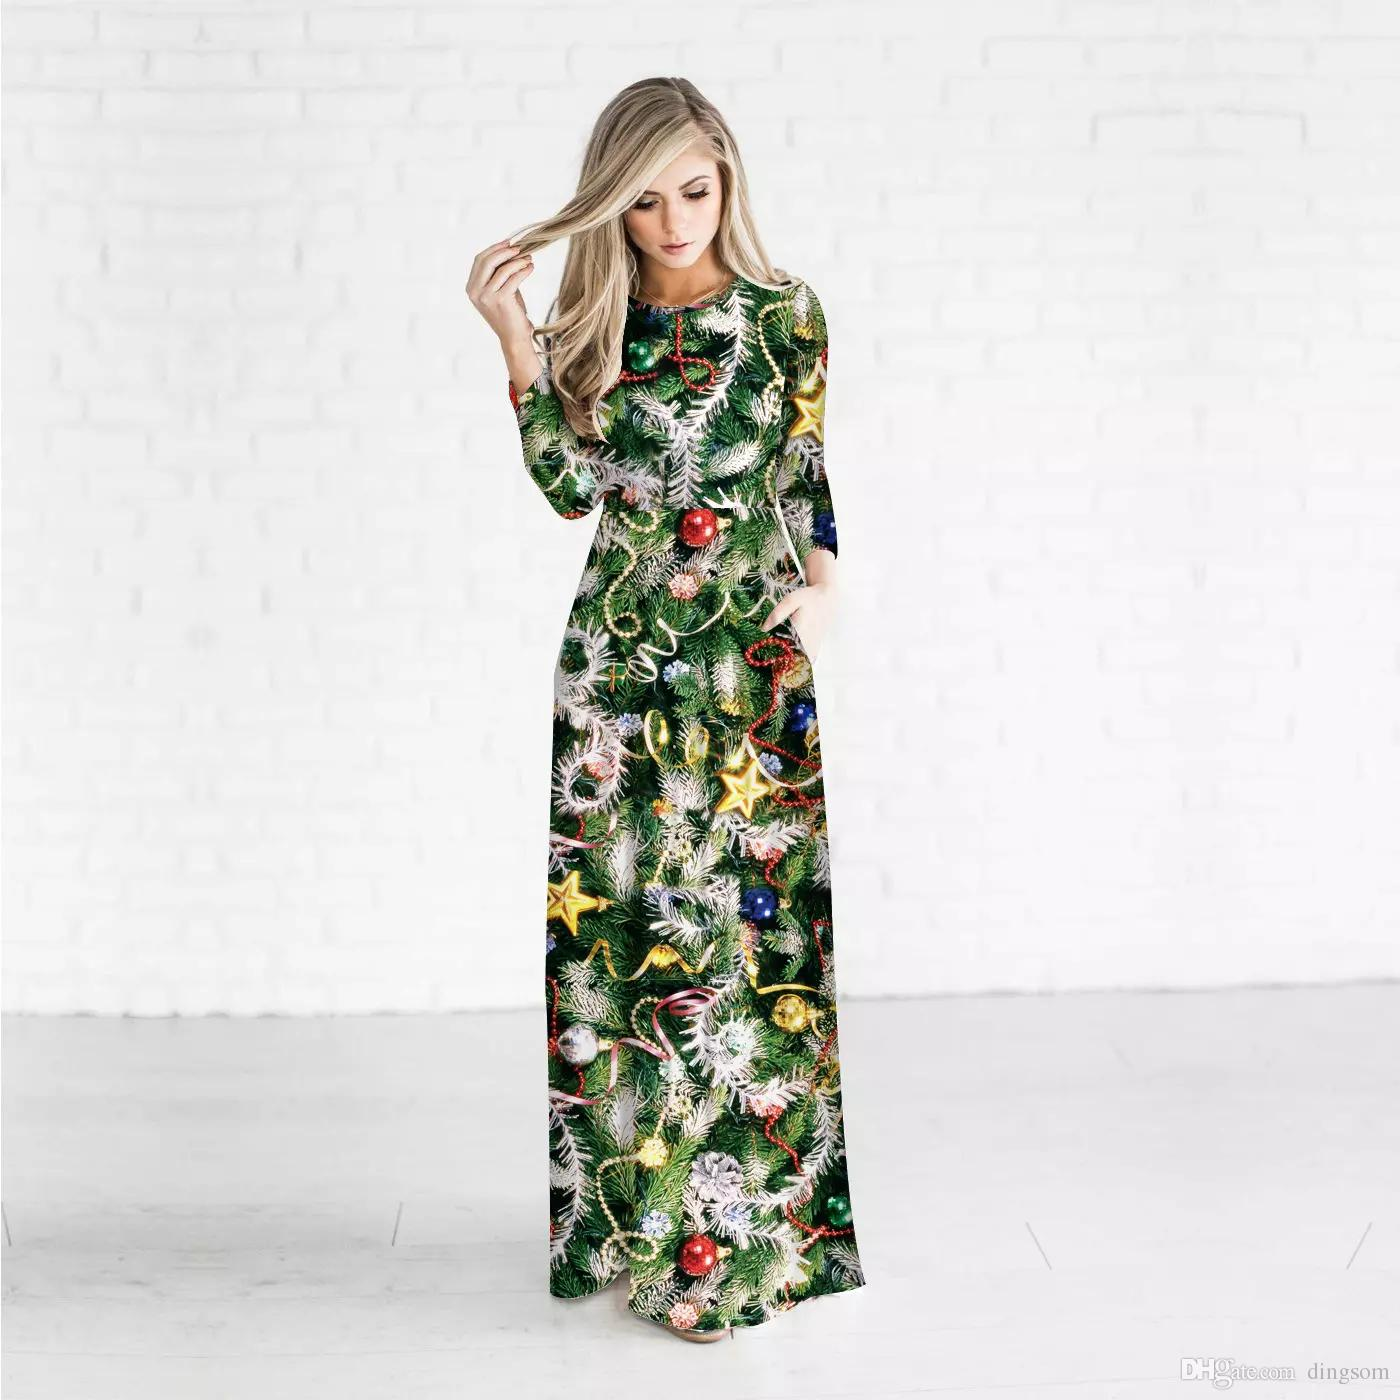 New Christmas Tree Printed Women 3D Print Dress Winter Crew Neck Slim Fit Ankle Length Lady Maxi Dress